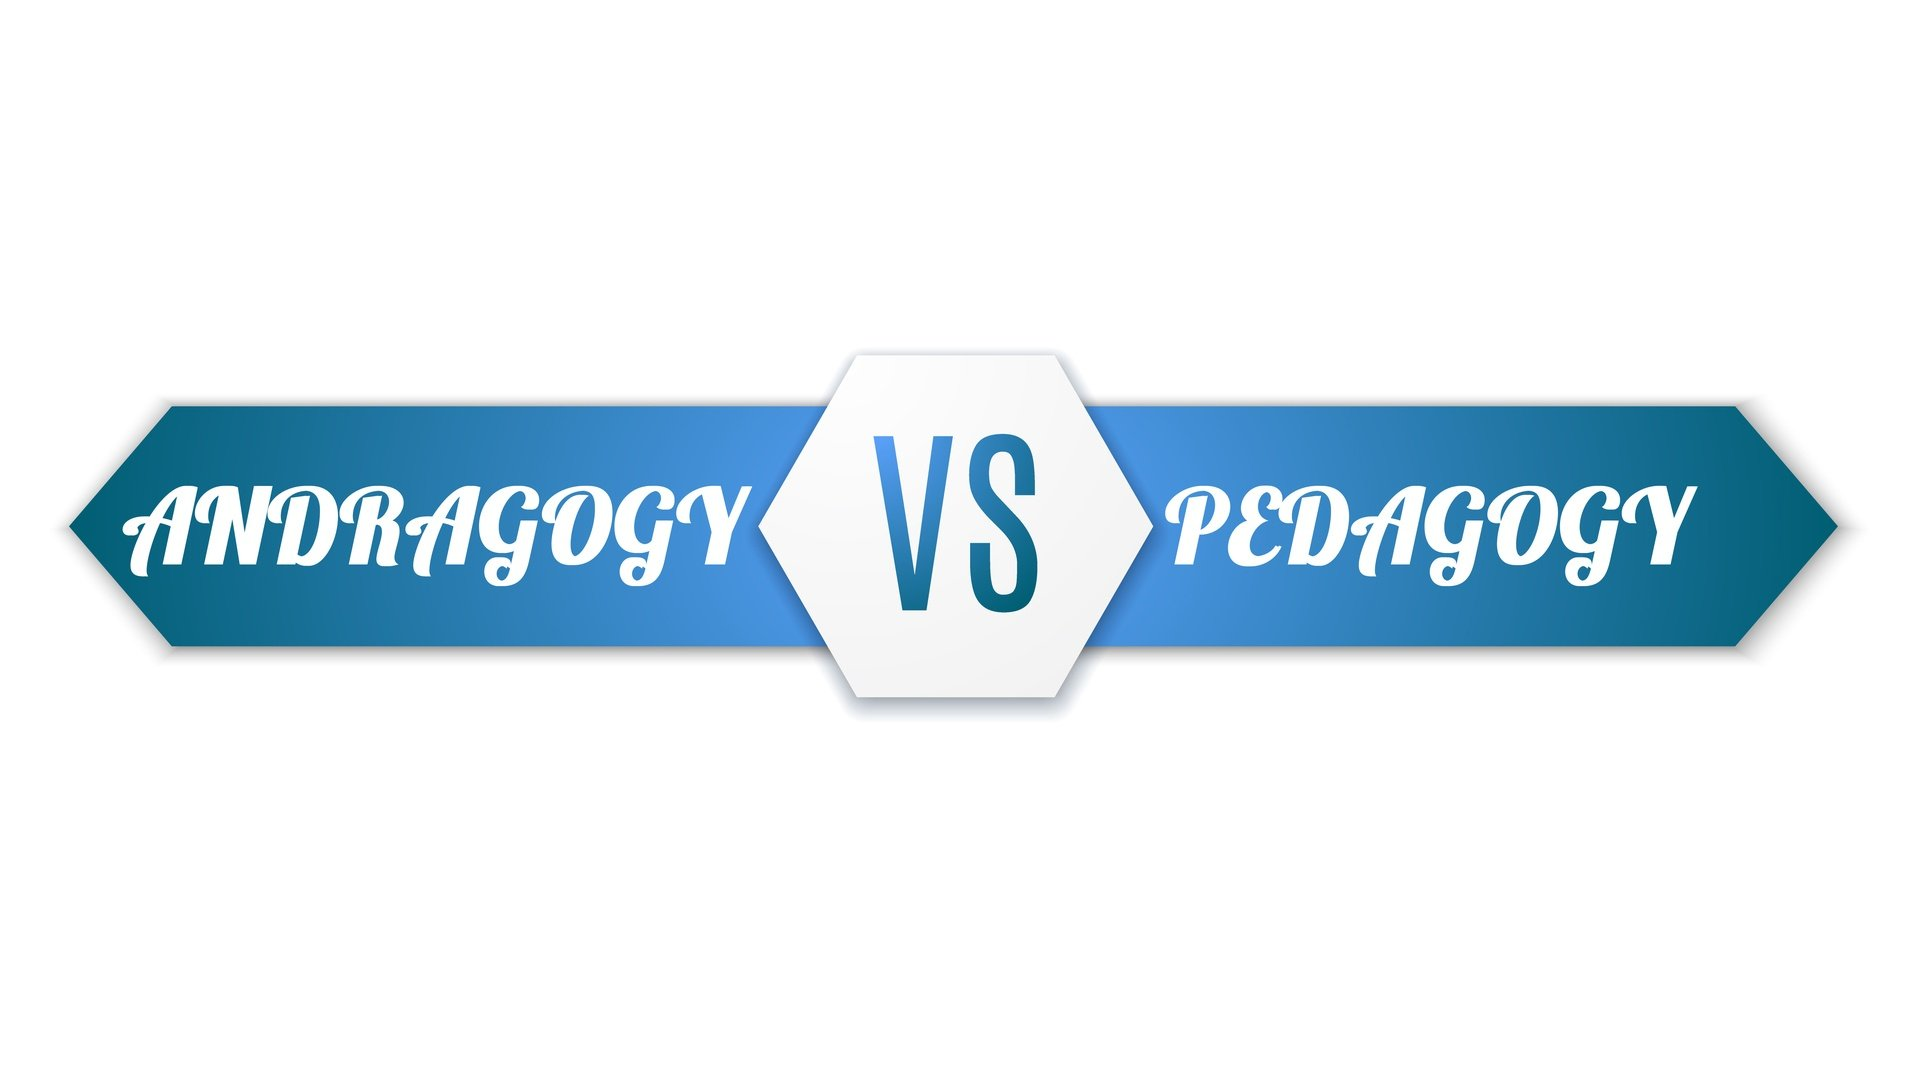 Pedagogy Vs Andragogy In eLearning: Can You Tell The